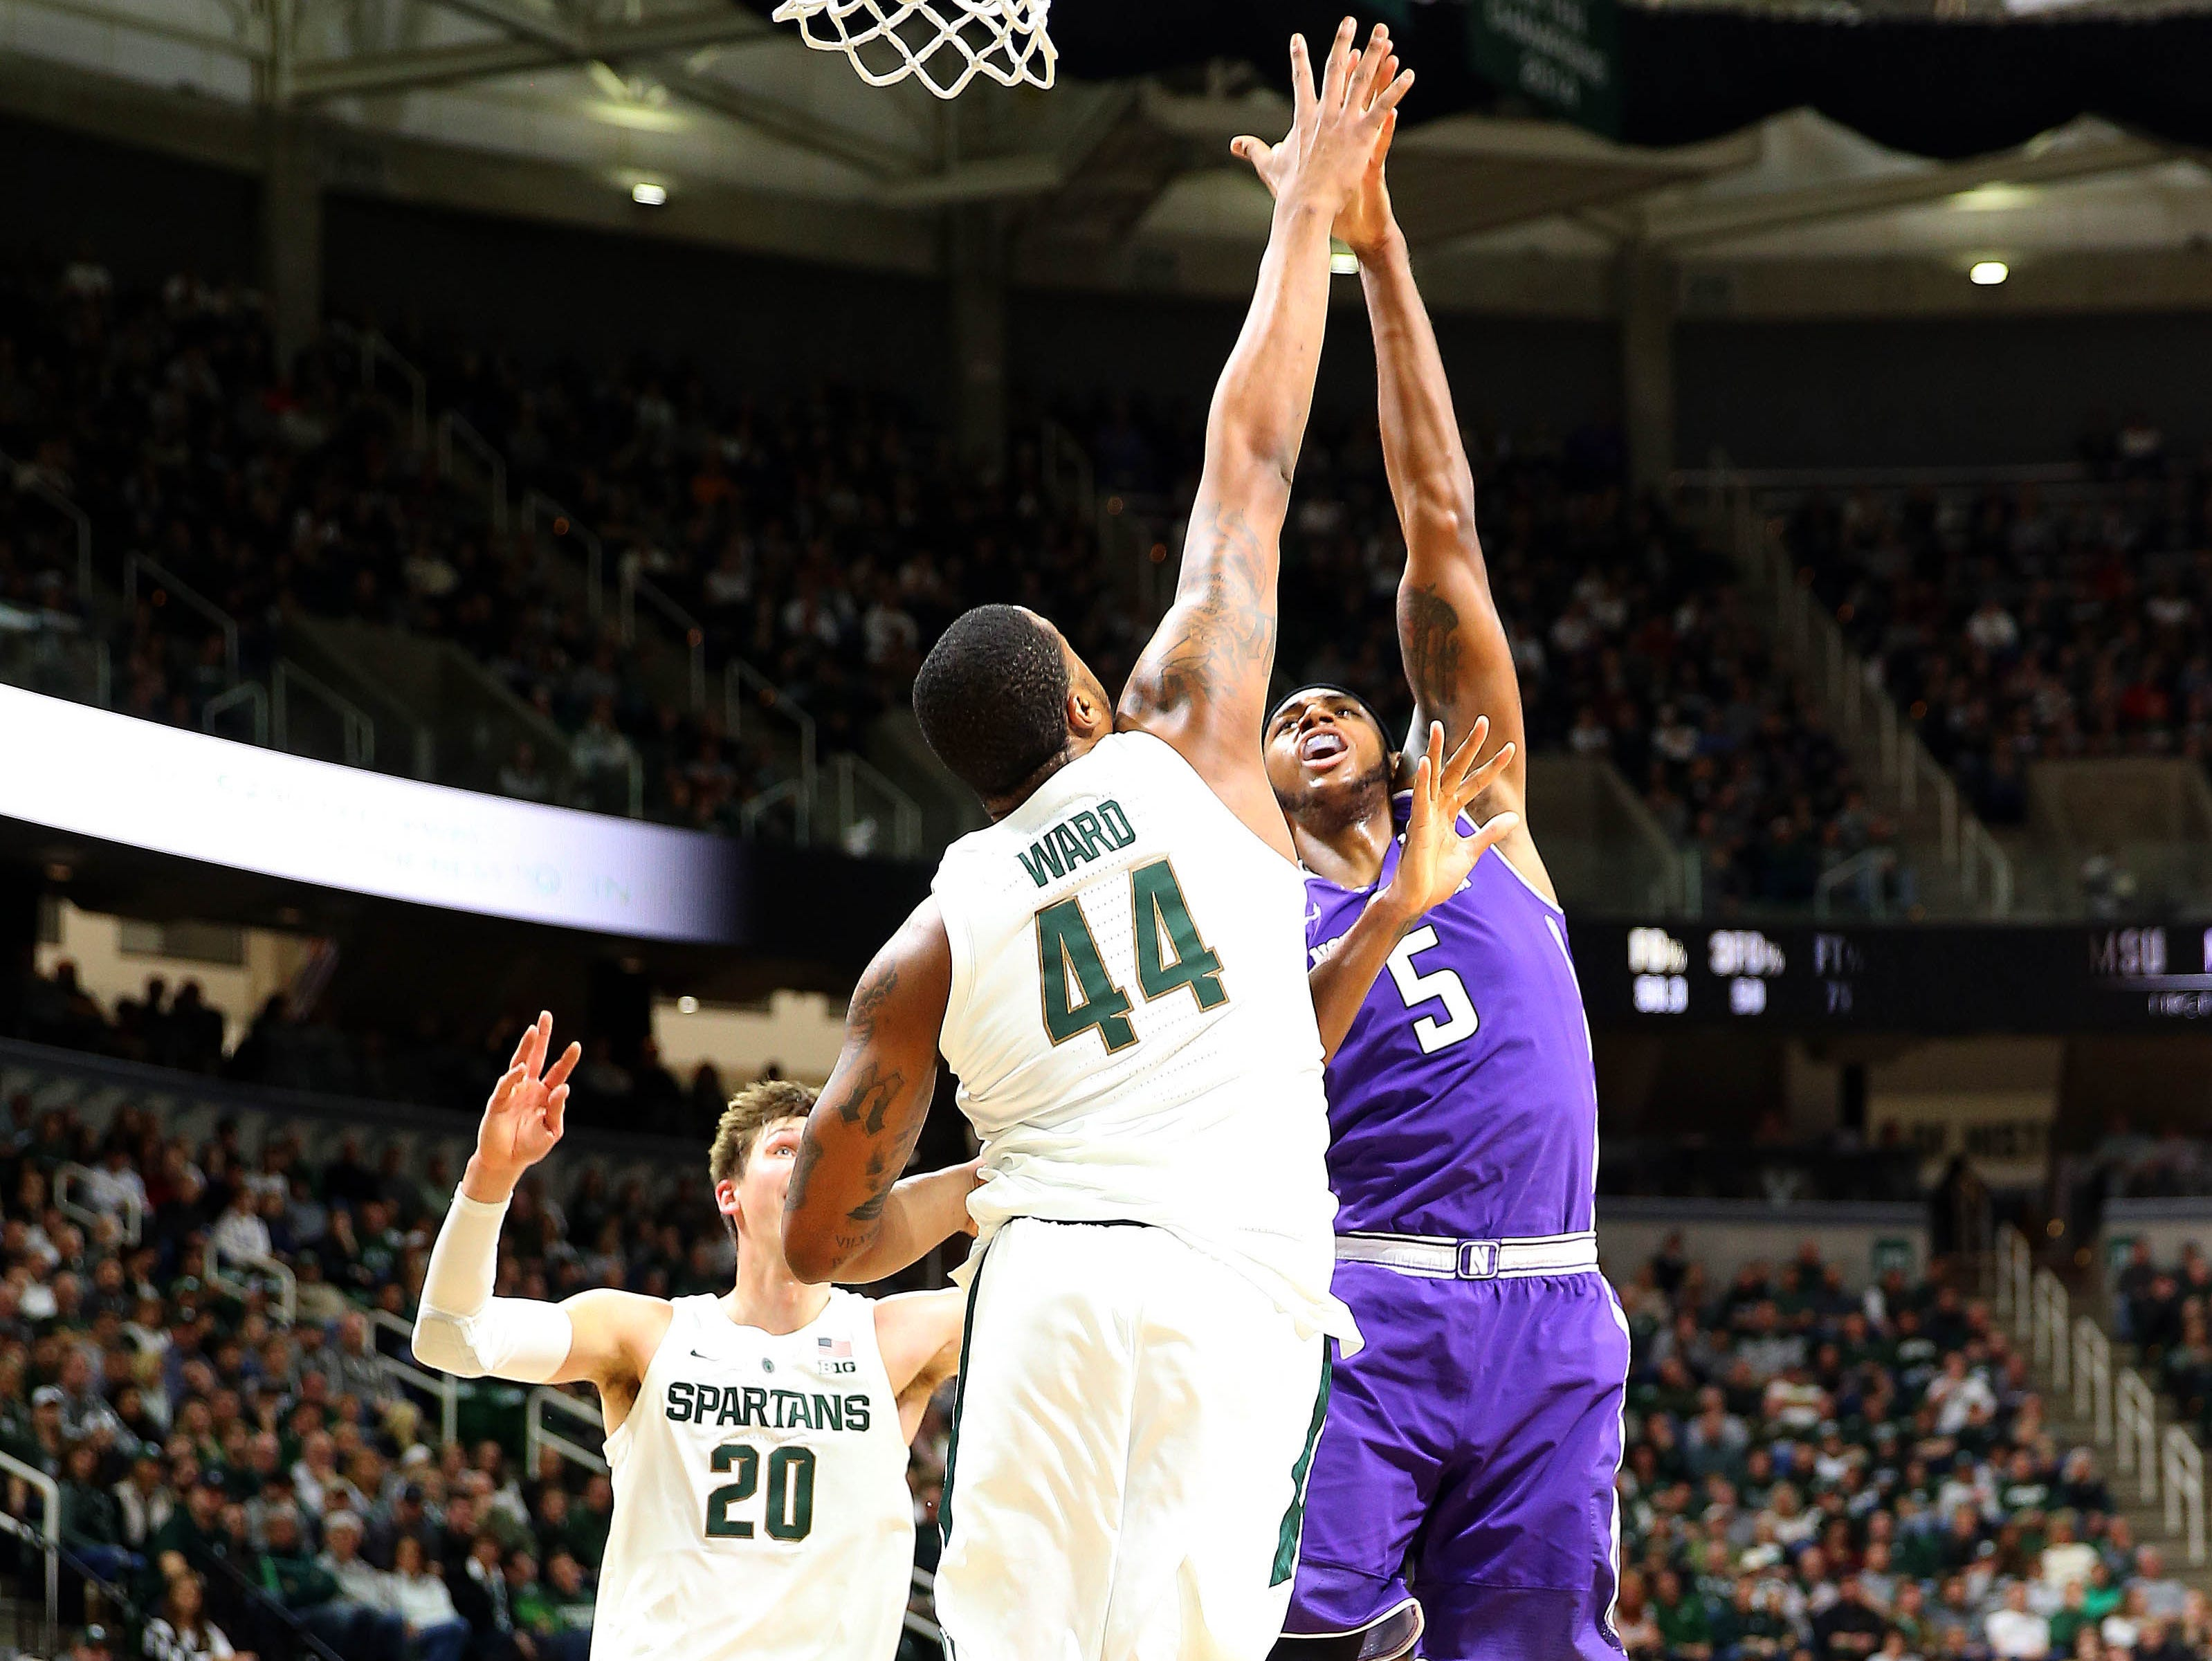 Jan 2, 2019; East Lansing, MI, USA; Northwestern Wildcats center Dererk Pardon (5) is defended by Michigan State Spartans forward Nick Ward (44) during the first half of a game at the Breslin Center. Mandatory Credit: Mike Carter-USA TODAY Sports